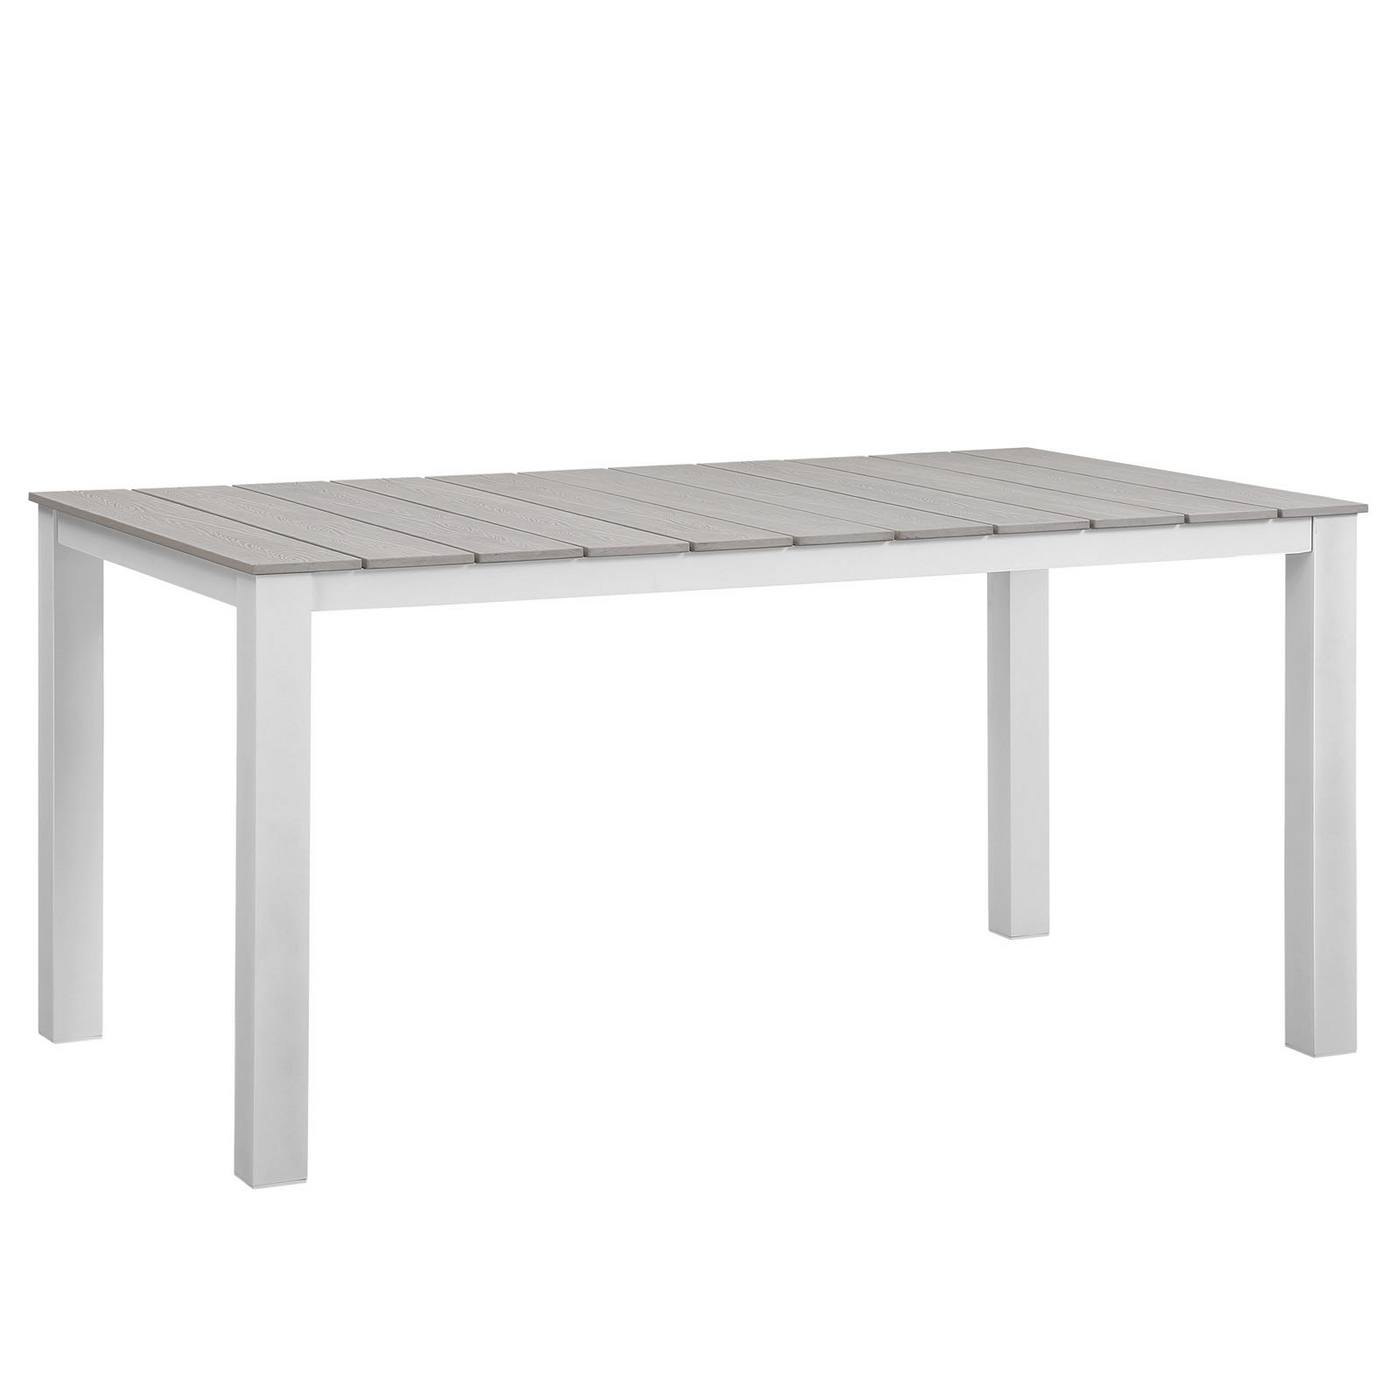 Maine 63 plank style outdoor patio dining table w for White patio table